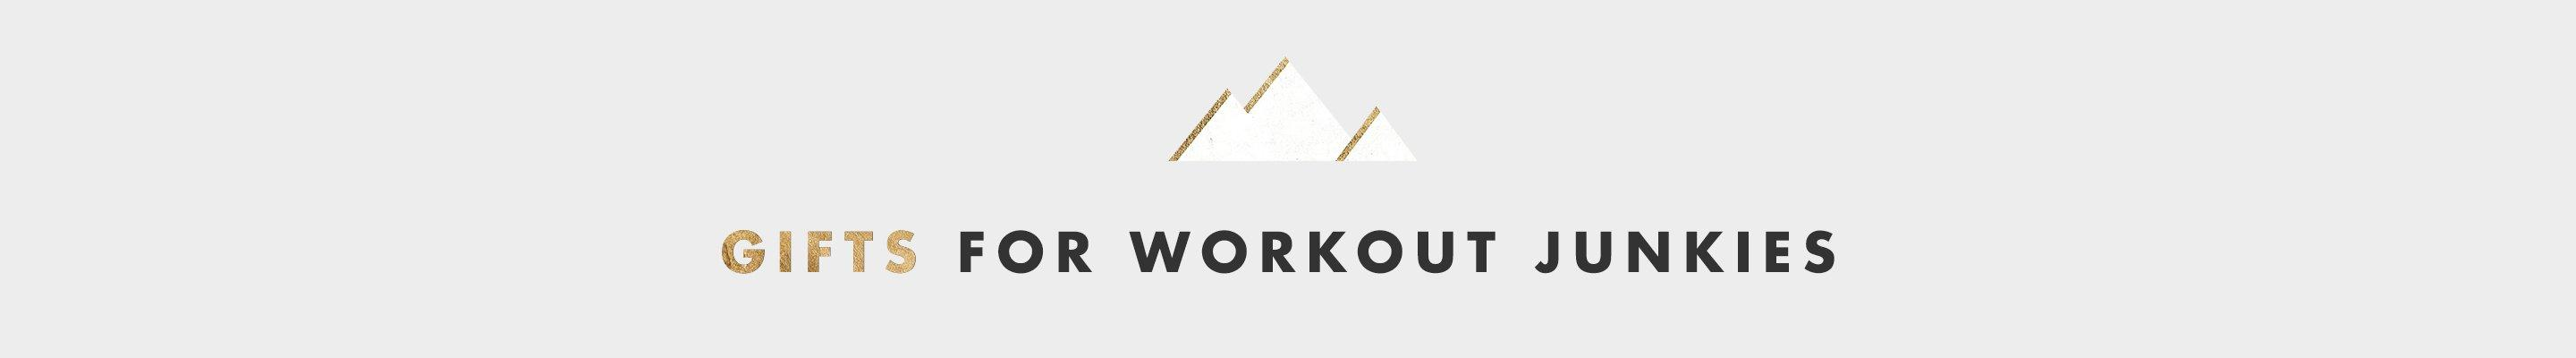 Gifts for workout junkies